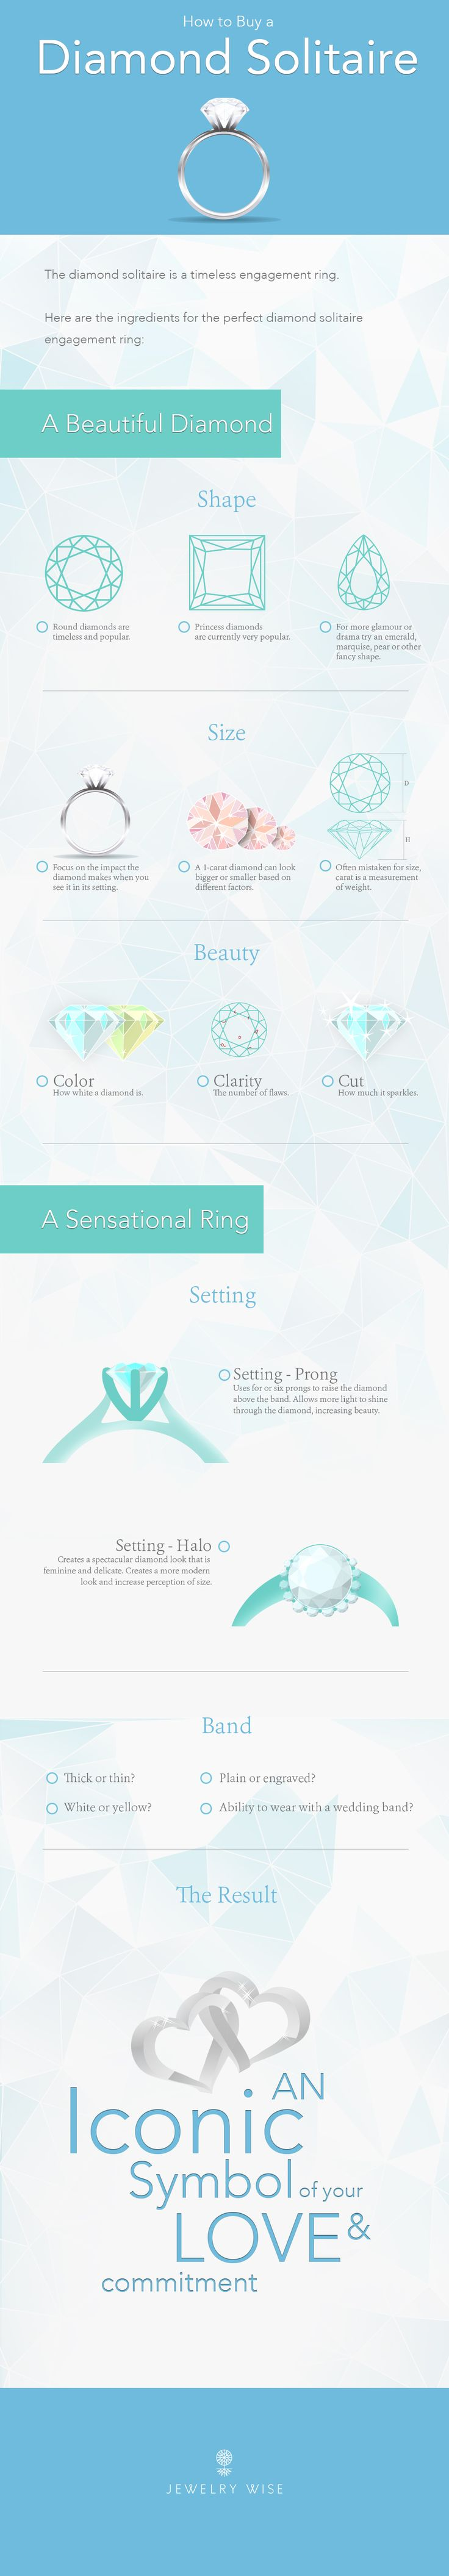 How To Buy A Diamond Solitaire . #Infographic #HowTo #DiamondRing